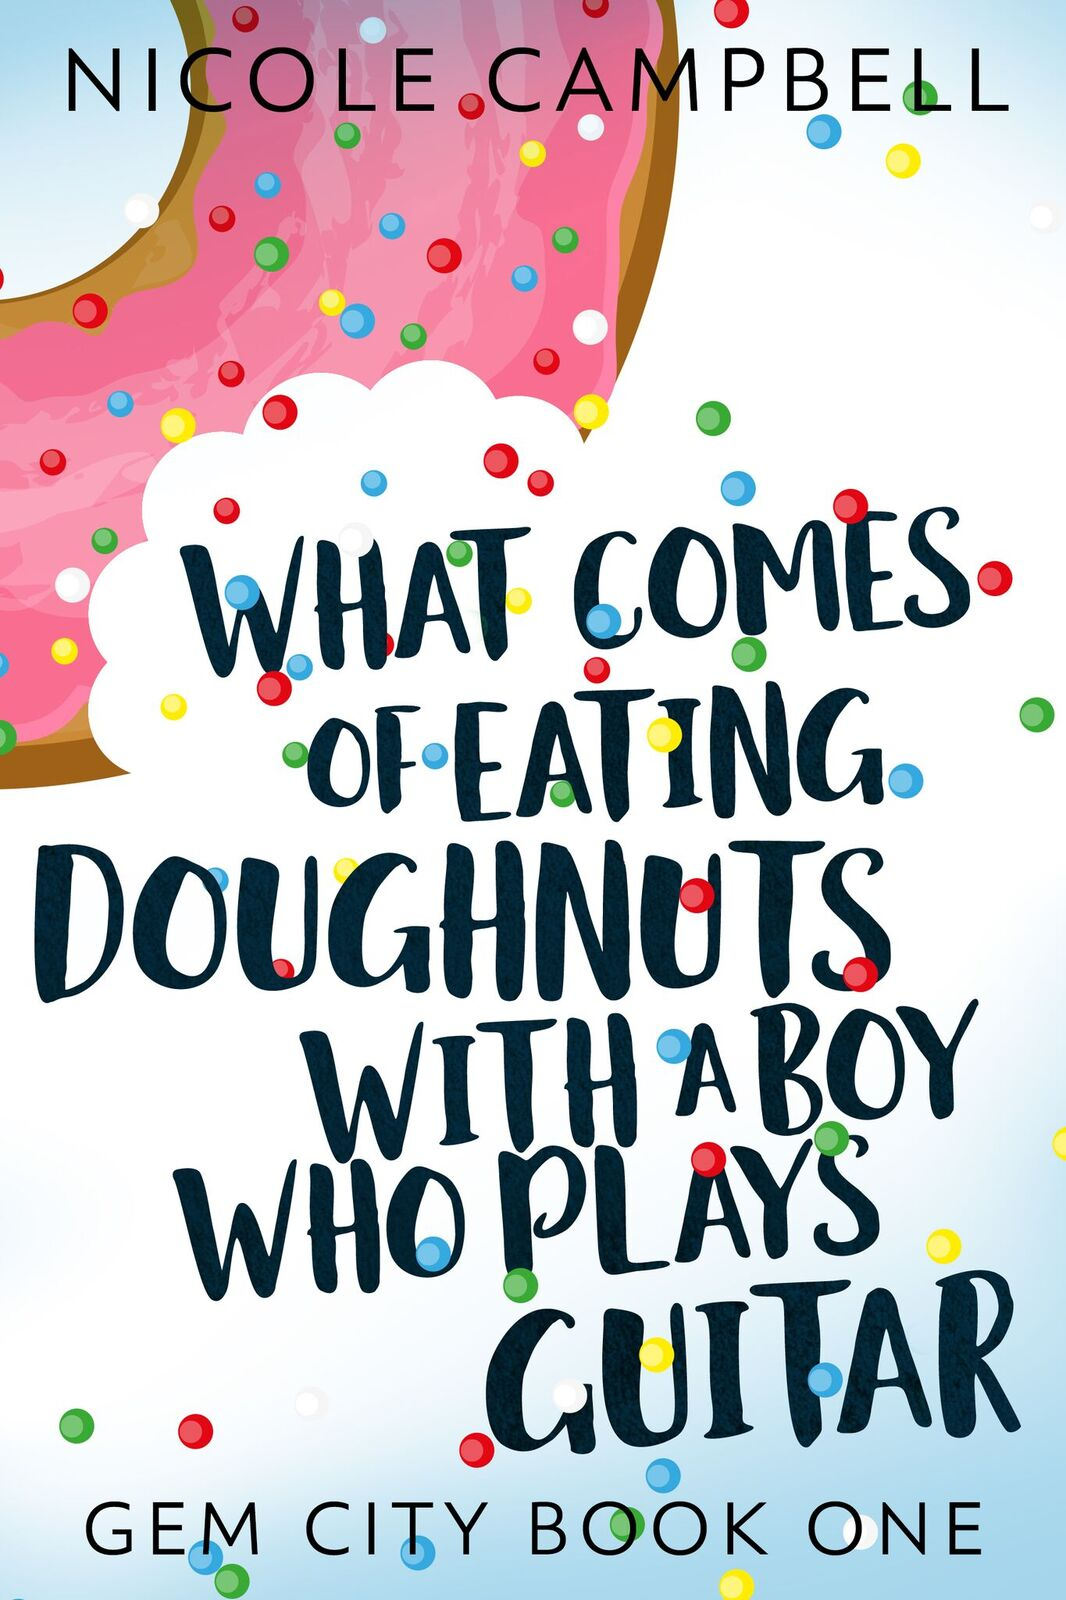 What comes of eating doughnuts with a boy who plays guitar (gem city book one)